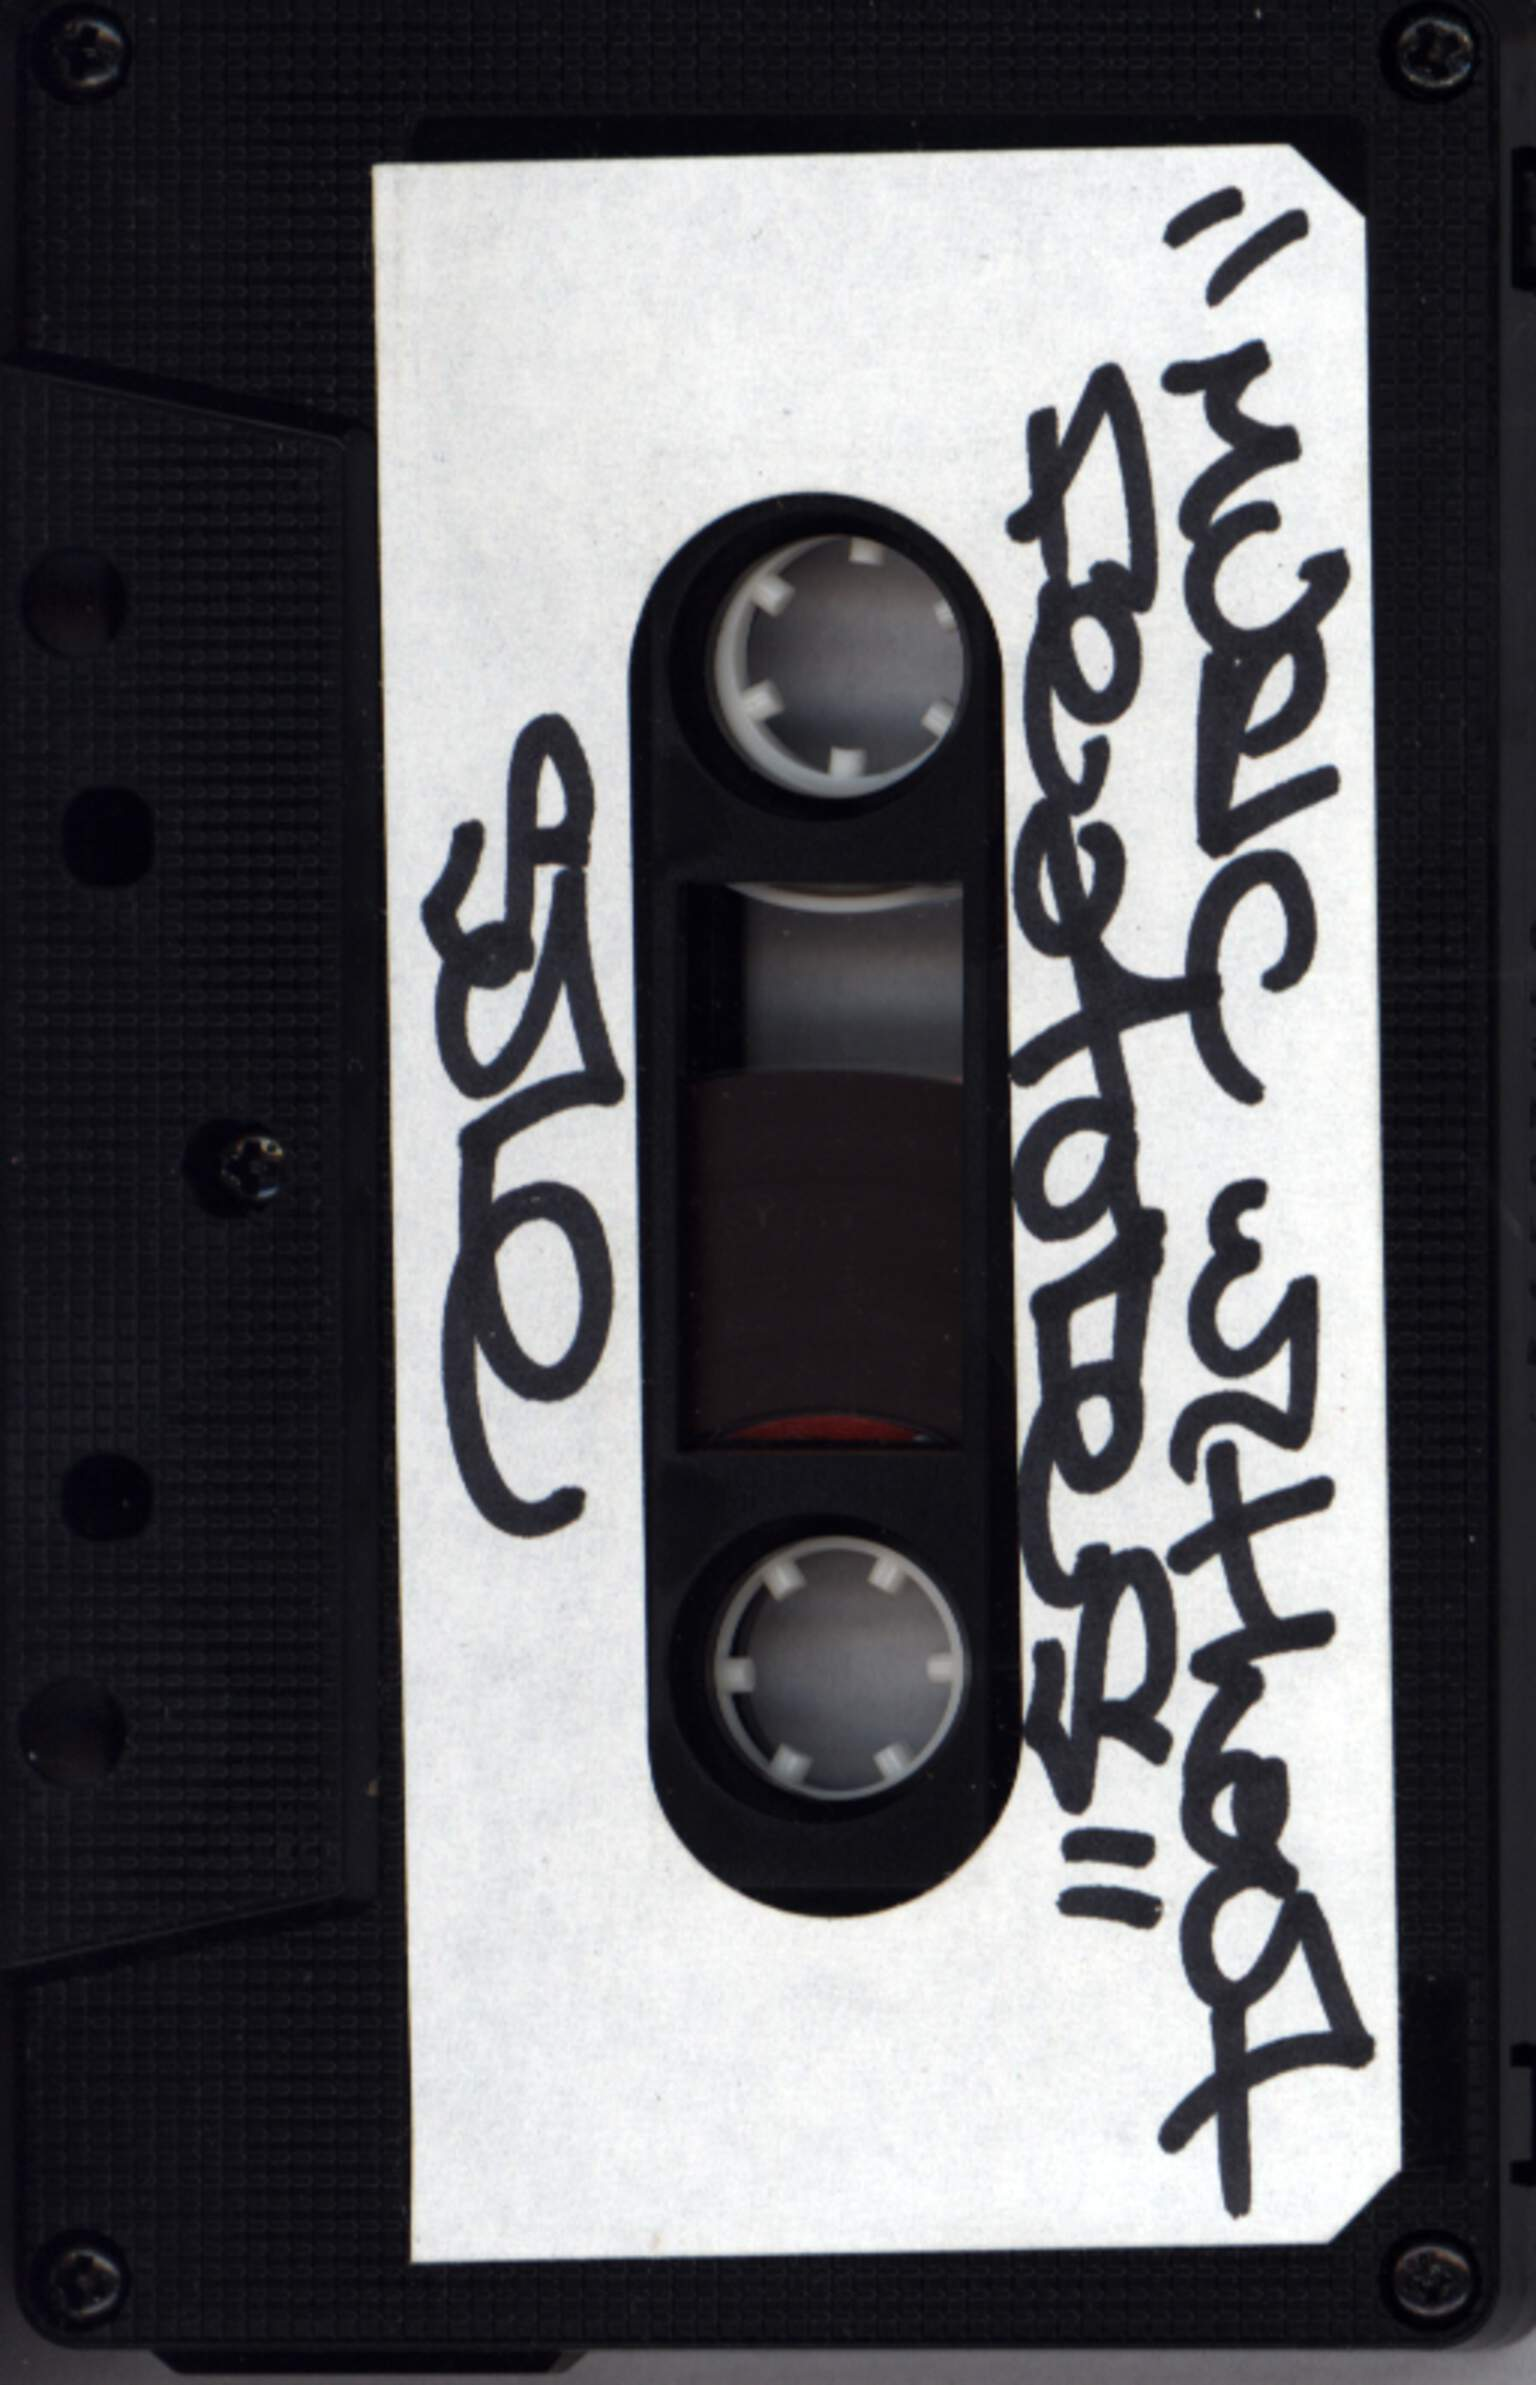 Sole: Music Without A Face, Compact Cassette